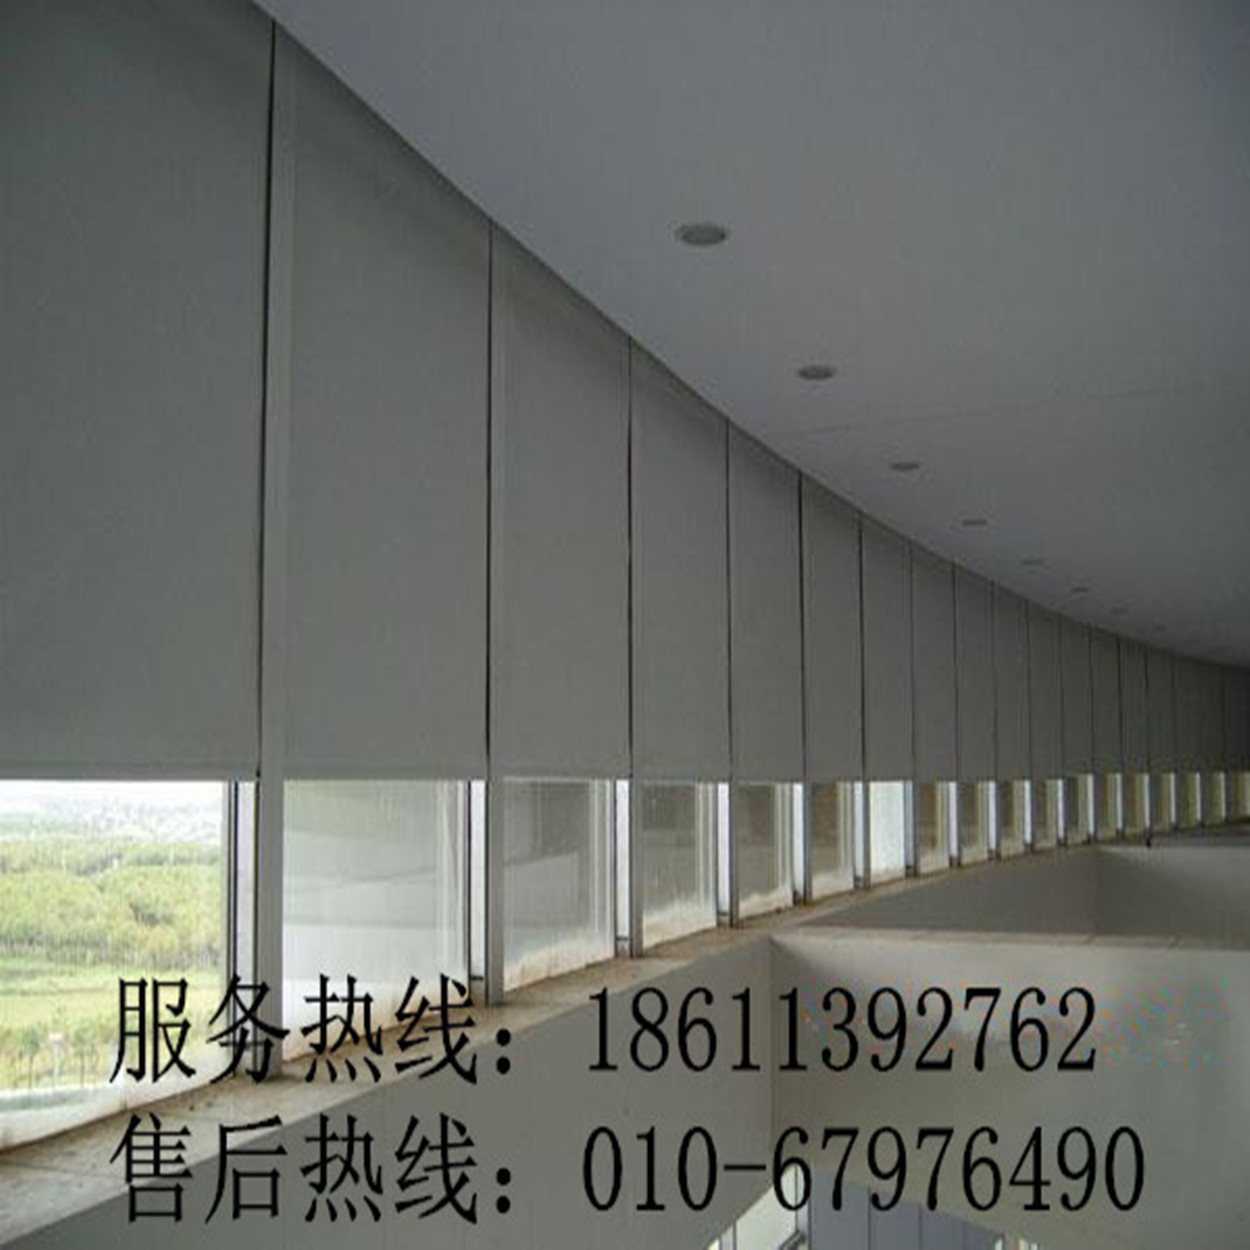 Waterproof Blackout Office Project Rolling Shutter Curtains